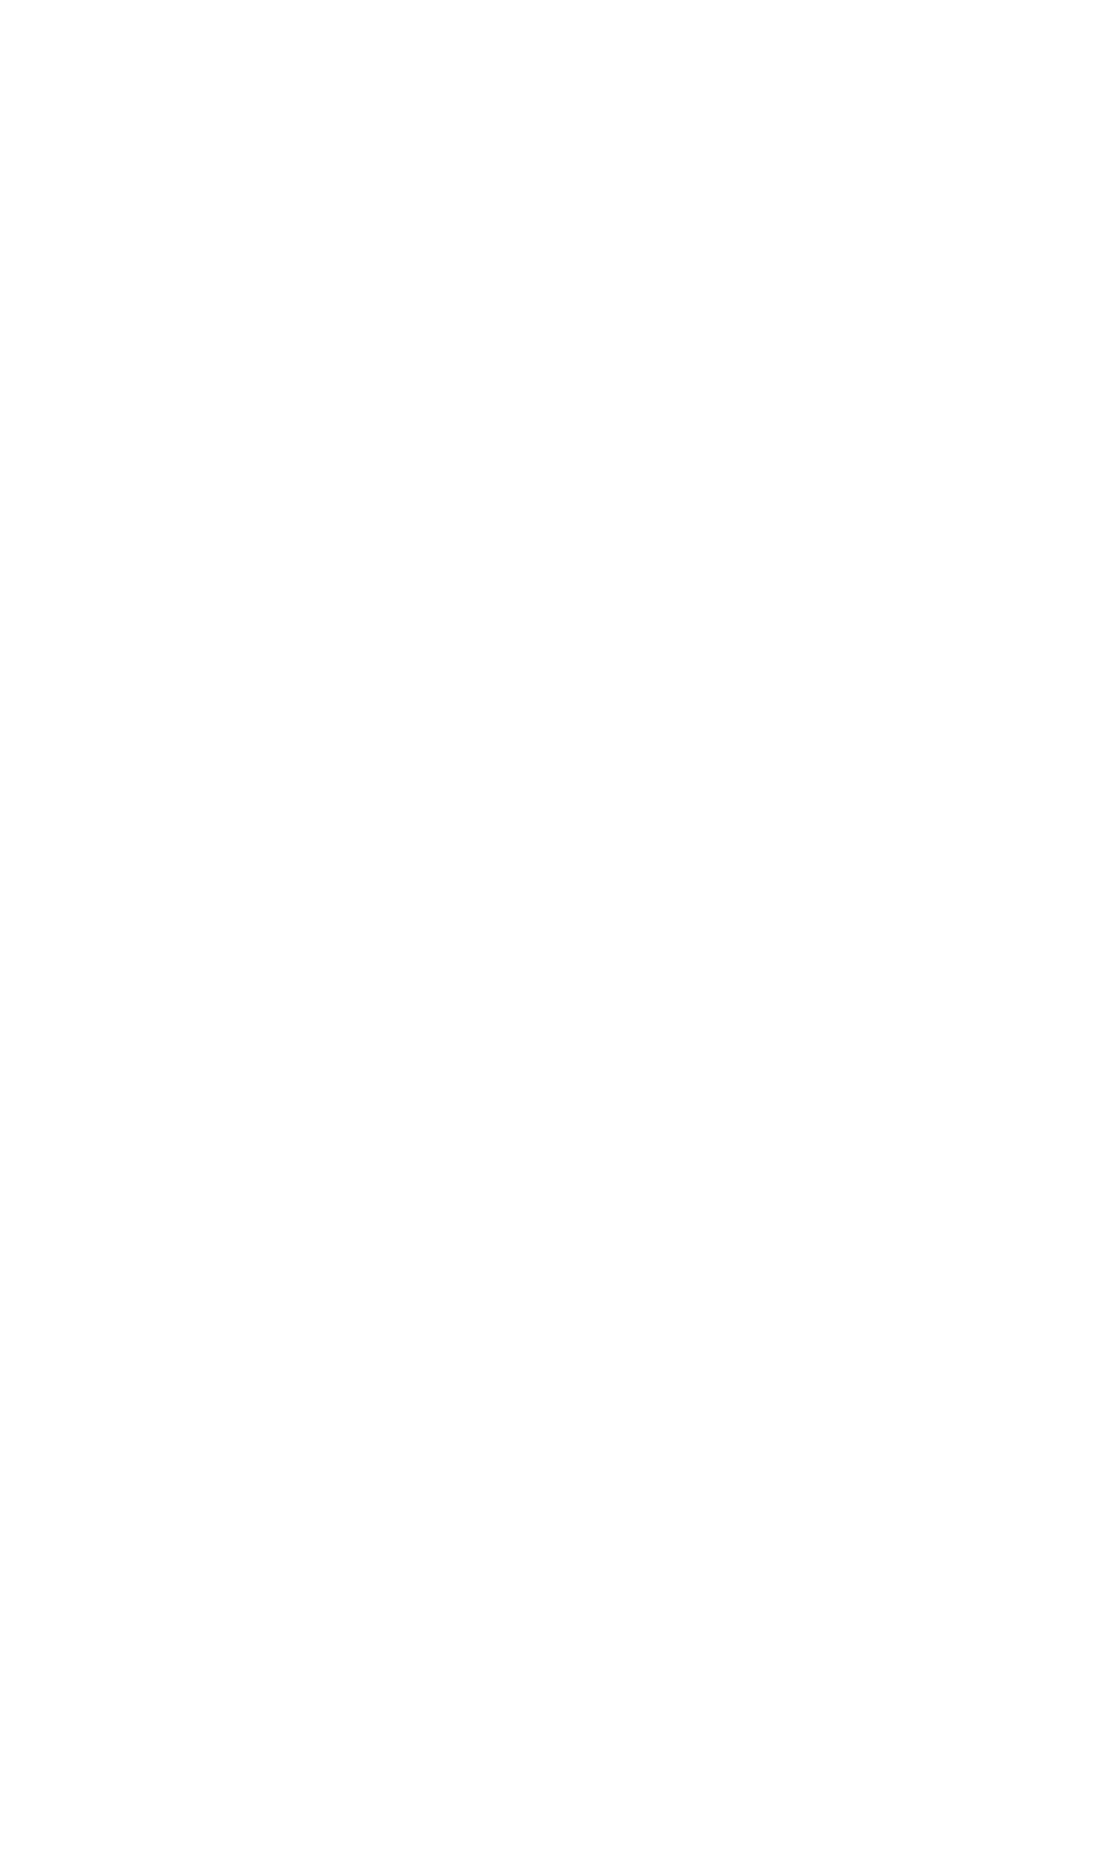 Upside down cross png. White upsidedown pixel art